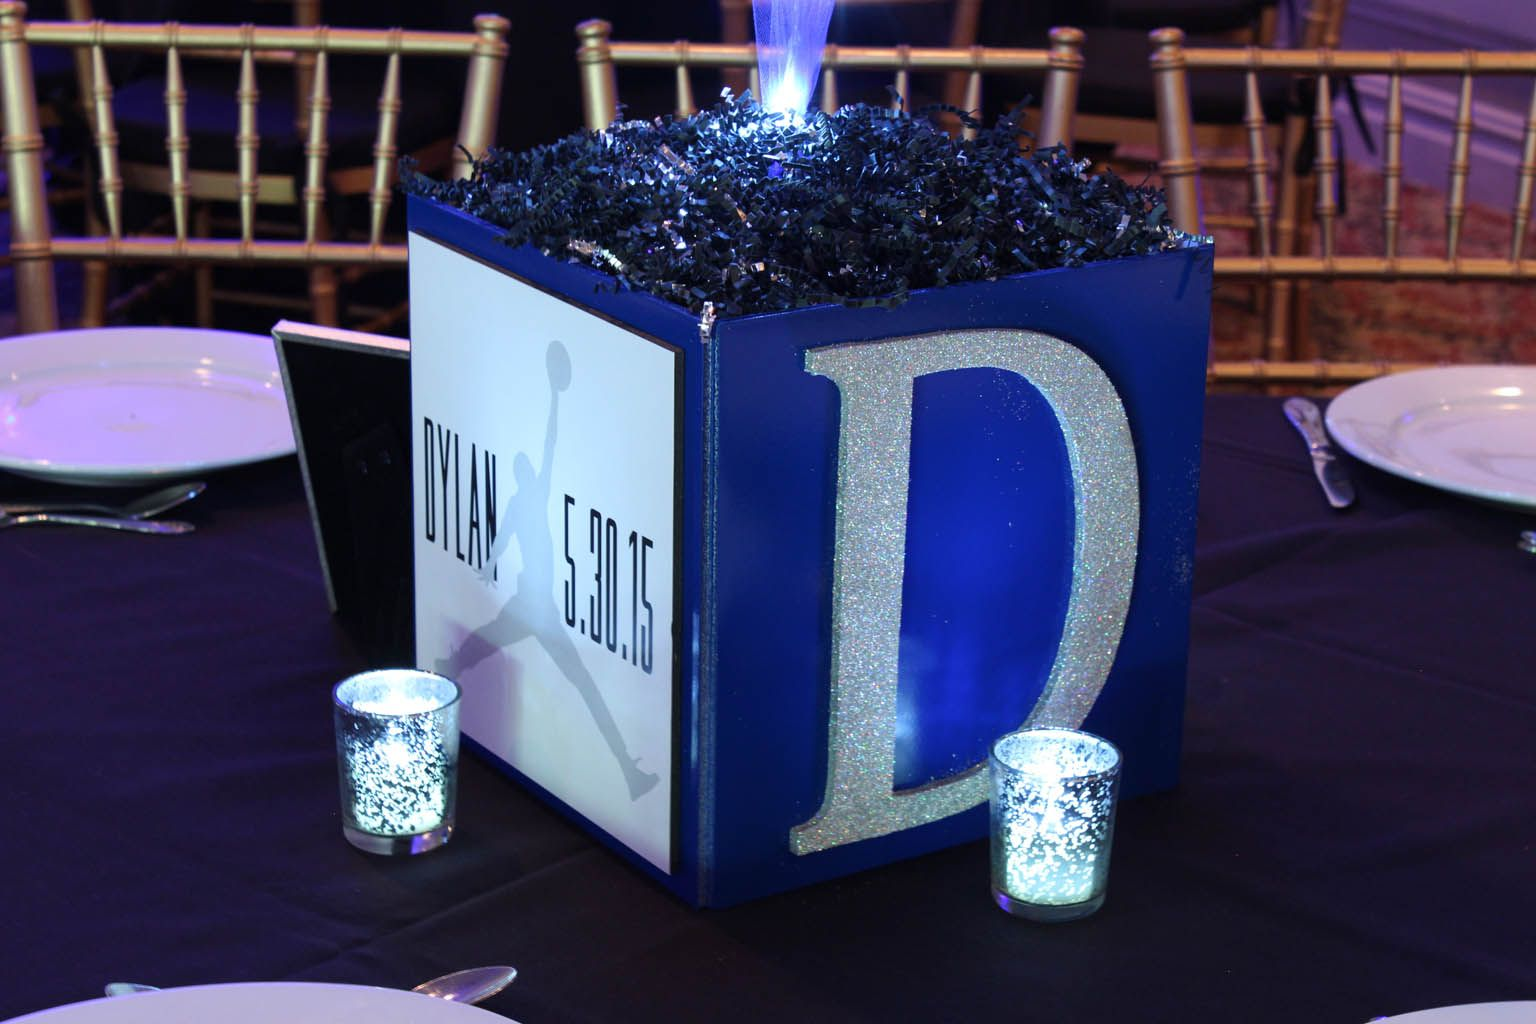 Bar mitzvah decor south florida mitzvah production by 84 west events - Bar Mitzvah Cube Centerpiecebar Mitzvah Cube Centerpiece With Custom Logo Initial Led Votives